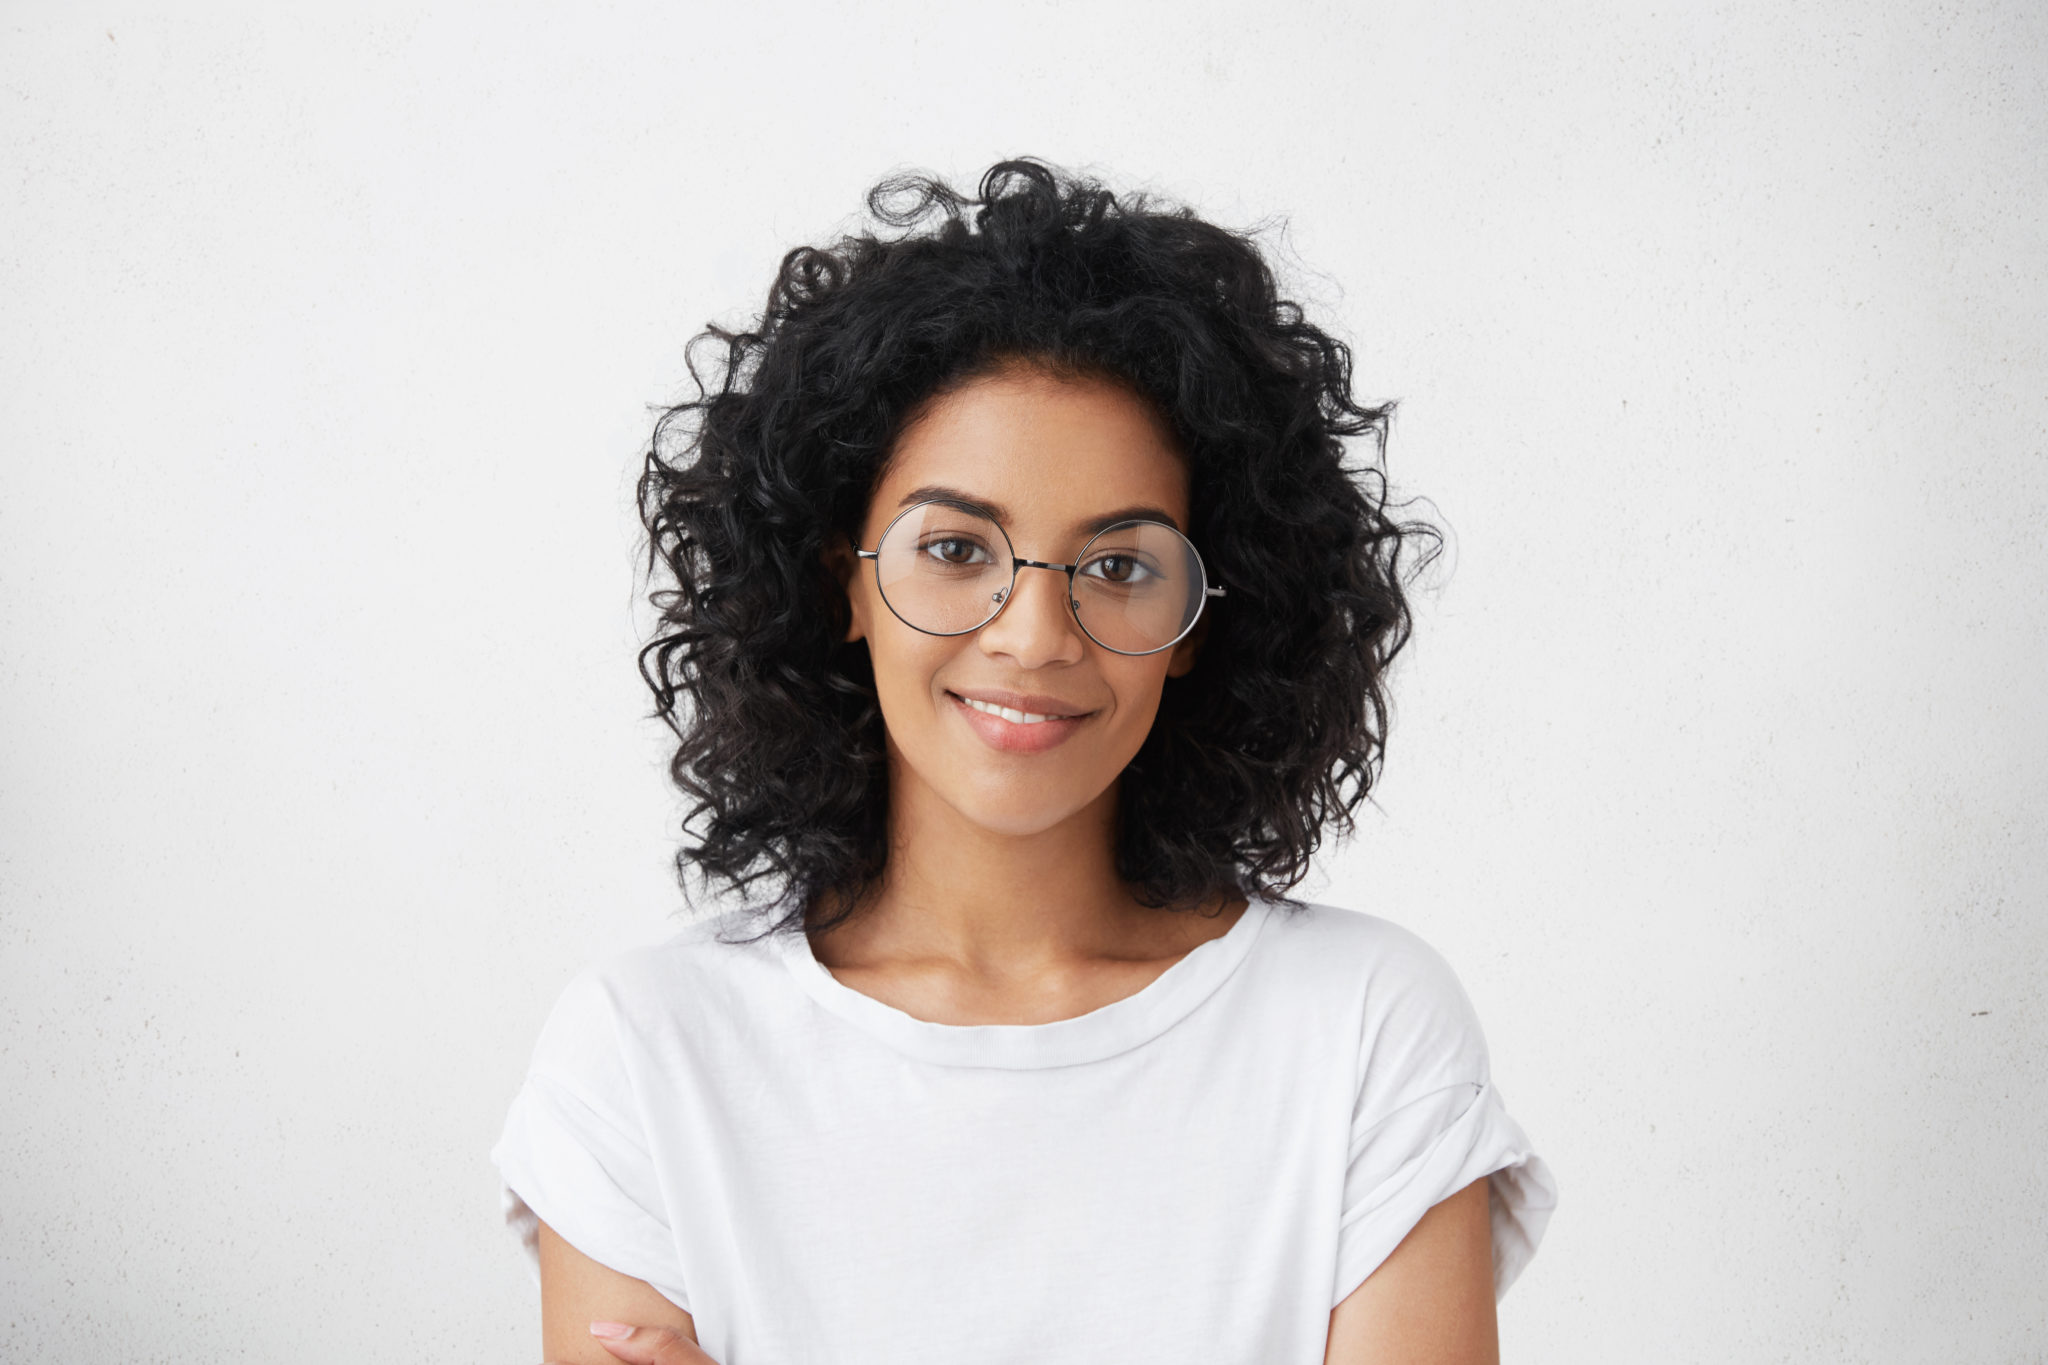 Close up studio shot of beautiful young mixed race woman model with curly dark hair looking at camera with charming cute smile while posing against white blank copy space wall for your content